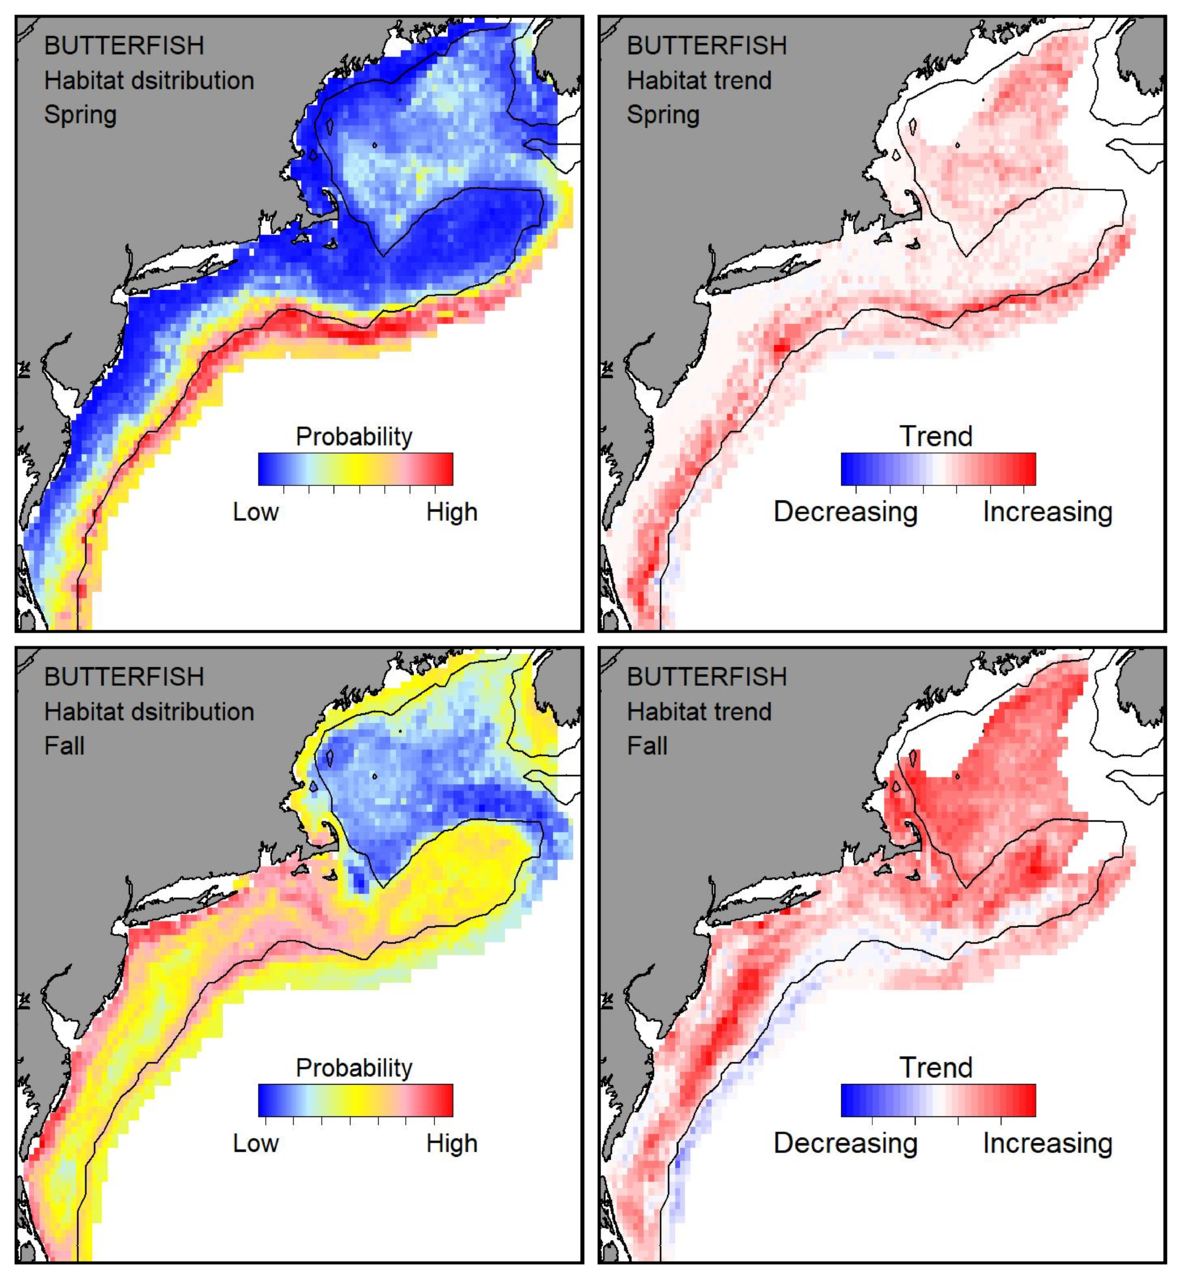 Probable habitat distribution for butterfish showing the highest concentration and increasing trend in the Gulf of Maine during the spring. Bottom row: Probable habitat distribution for butterfish showing the highest concentration and increasing trend in the Gulf of Maine during the fall.